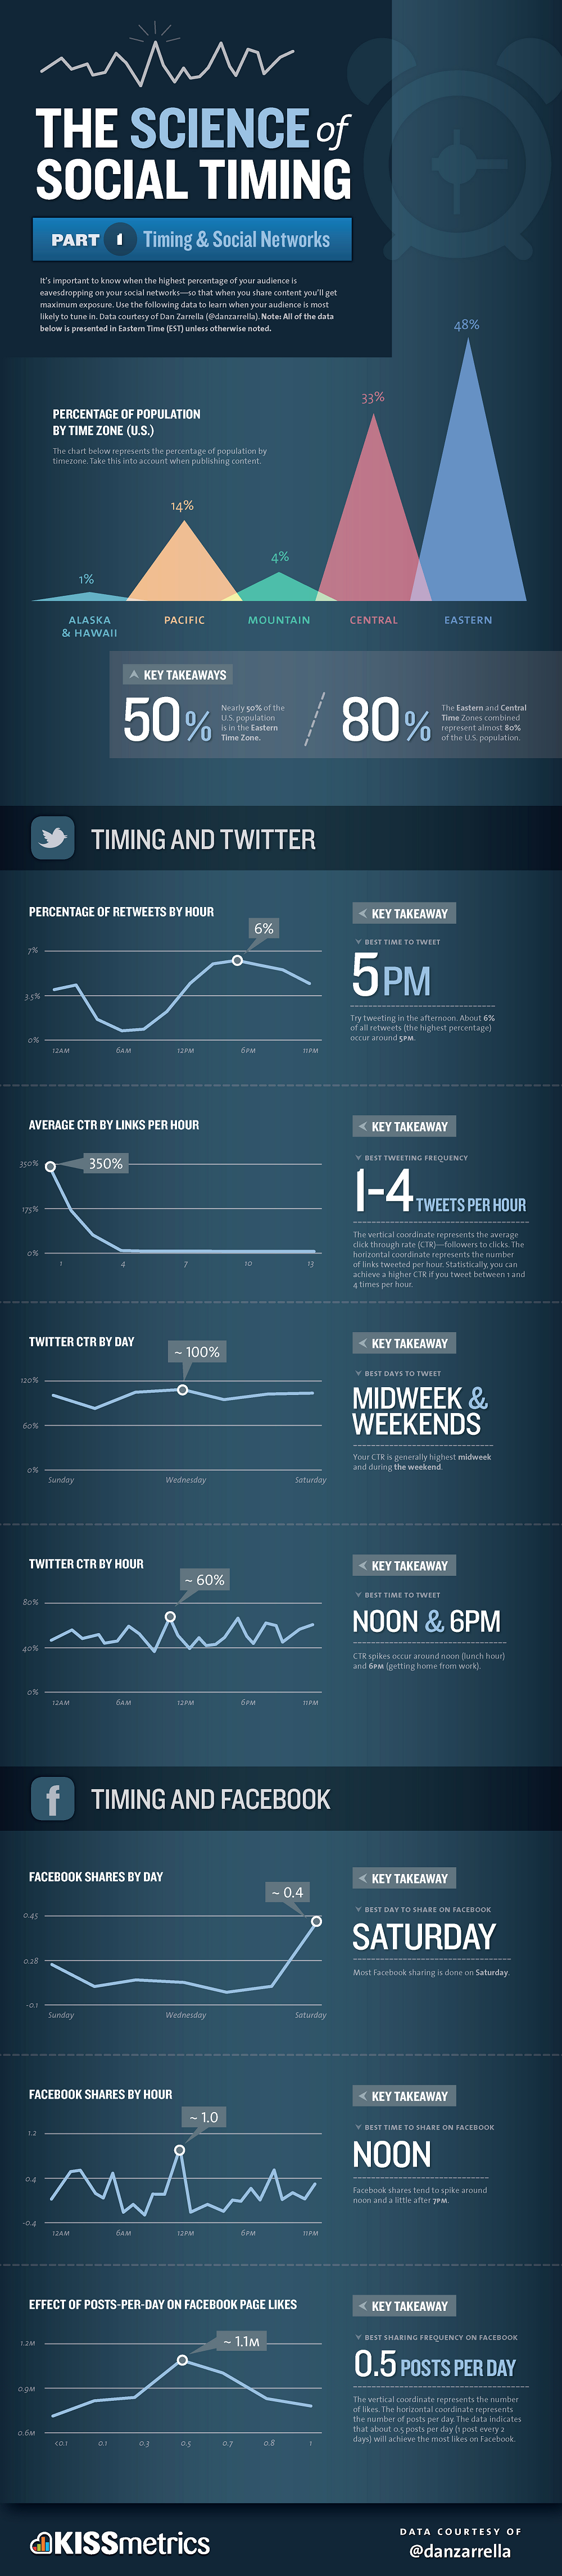 """A question often asked to me is """"when is the best time to post on social media?"""". Data suggests that there are distinct windows in which to share content if you want to achieve to get maximum exposure. It's important to know when the highest percentage of your audience is […]"""